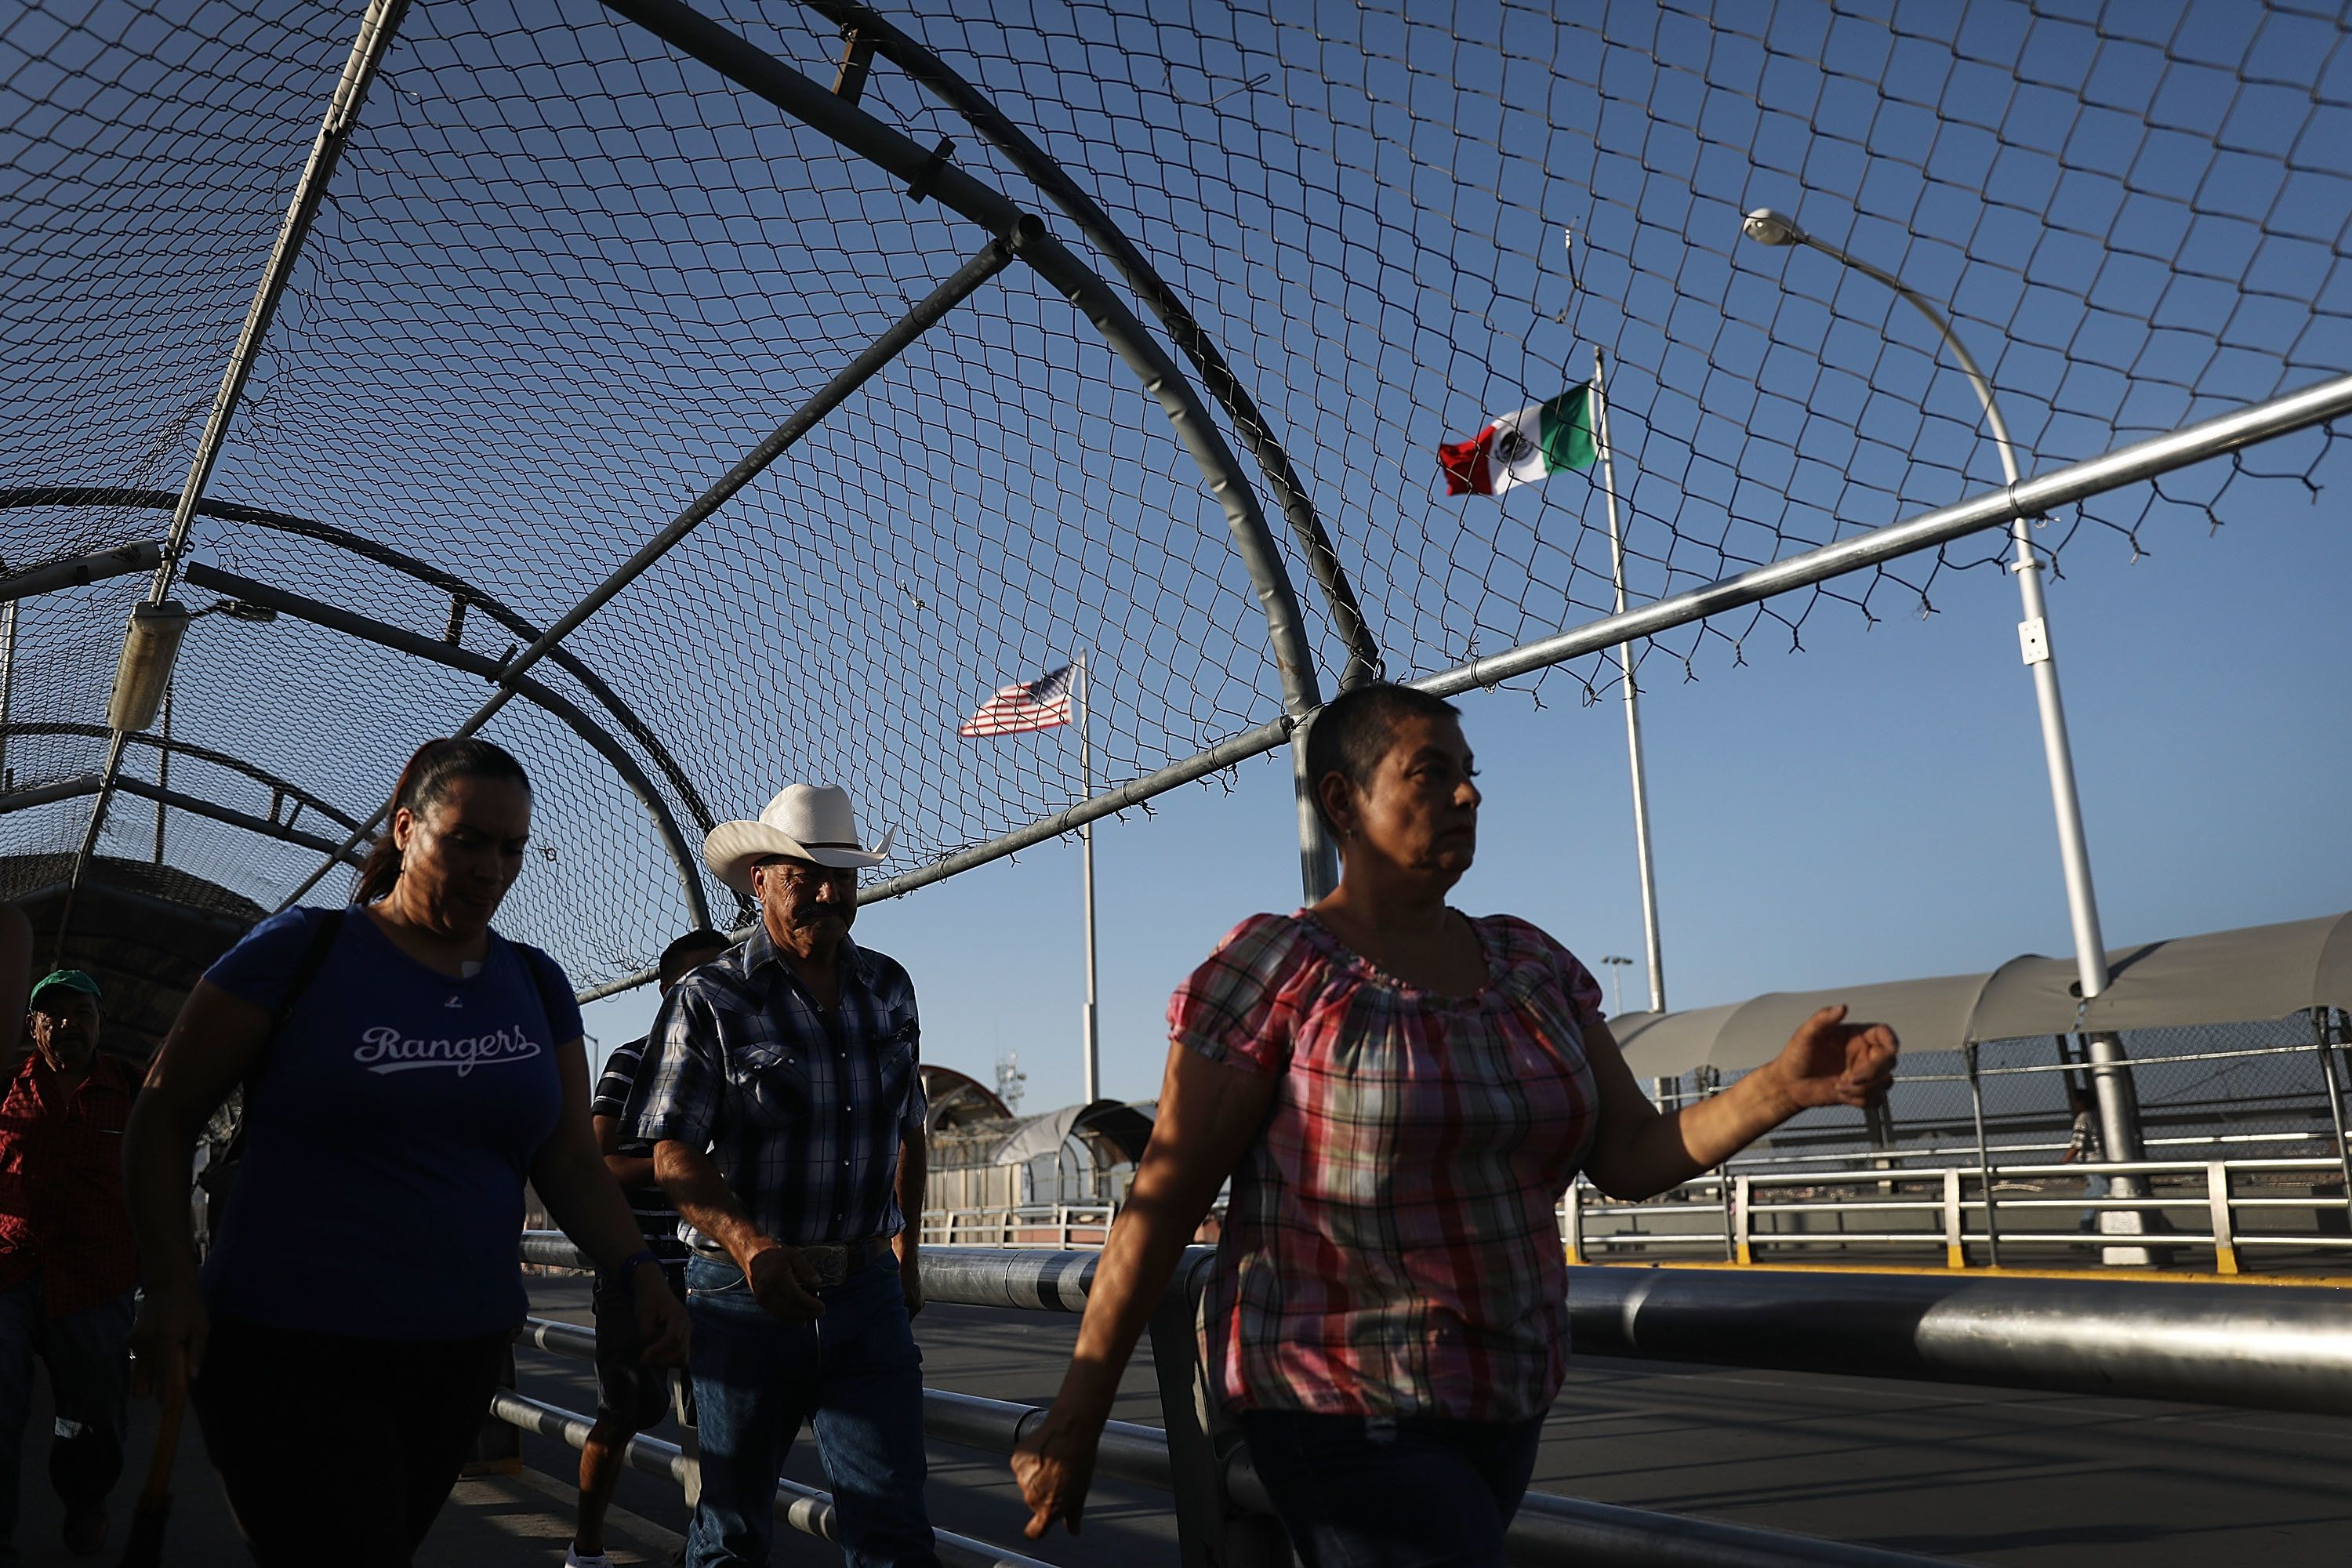 EL PASO, TX - JULY 23:  People walk across the Paso Del Norte Port of Entry bridge which connects the U.S. and Mexico on July 23, 2018 in El Paso, Texas. A court-ordered July 26th deadline is approaching for the U.S. government to reunite as many as 2,551 migrant children ages 5 to 17 that had been separated from their families after they crossed into the U.S. from Mexico along the border.  (Photo by Joe Raedle/Getty Images)